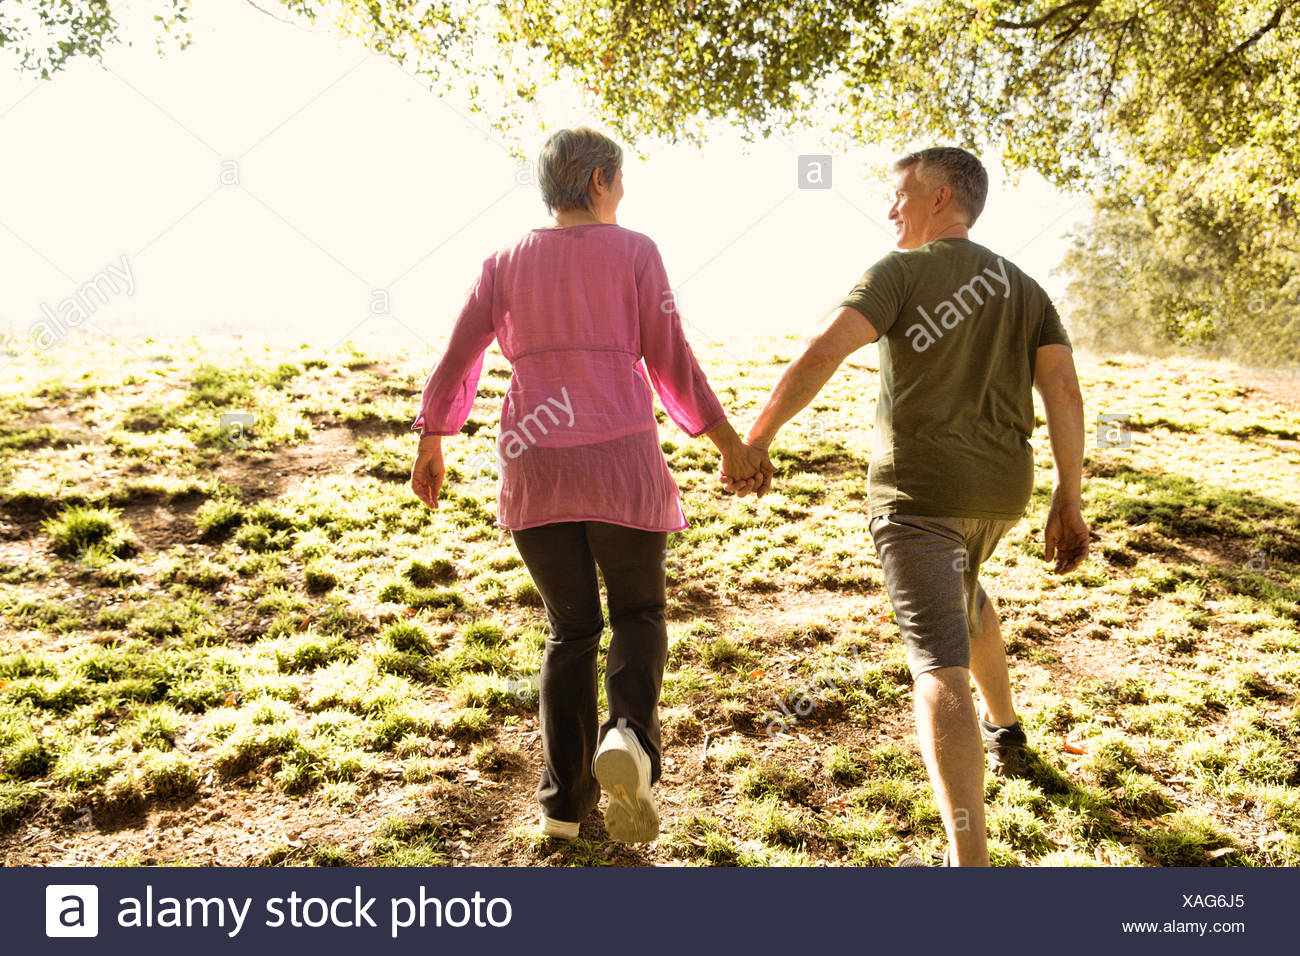 Rear view of mature couple power walking in park - Stock Image